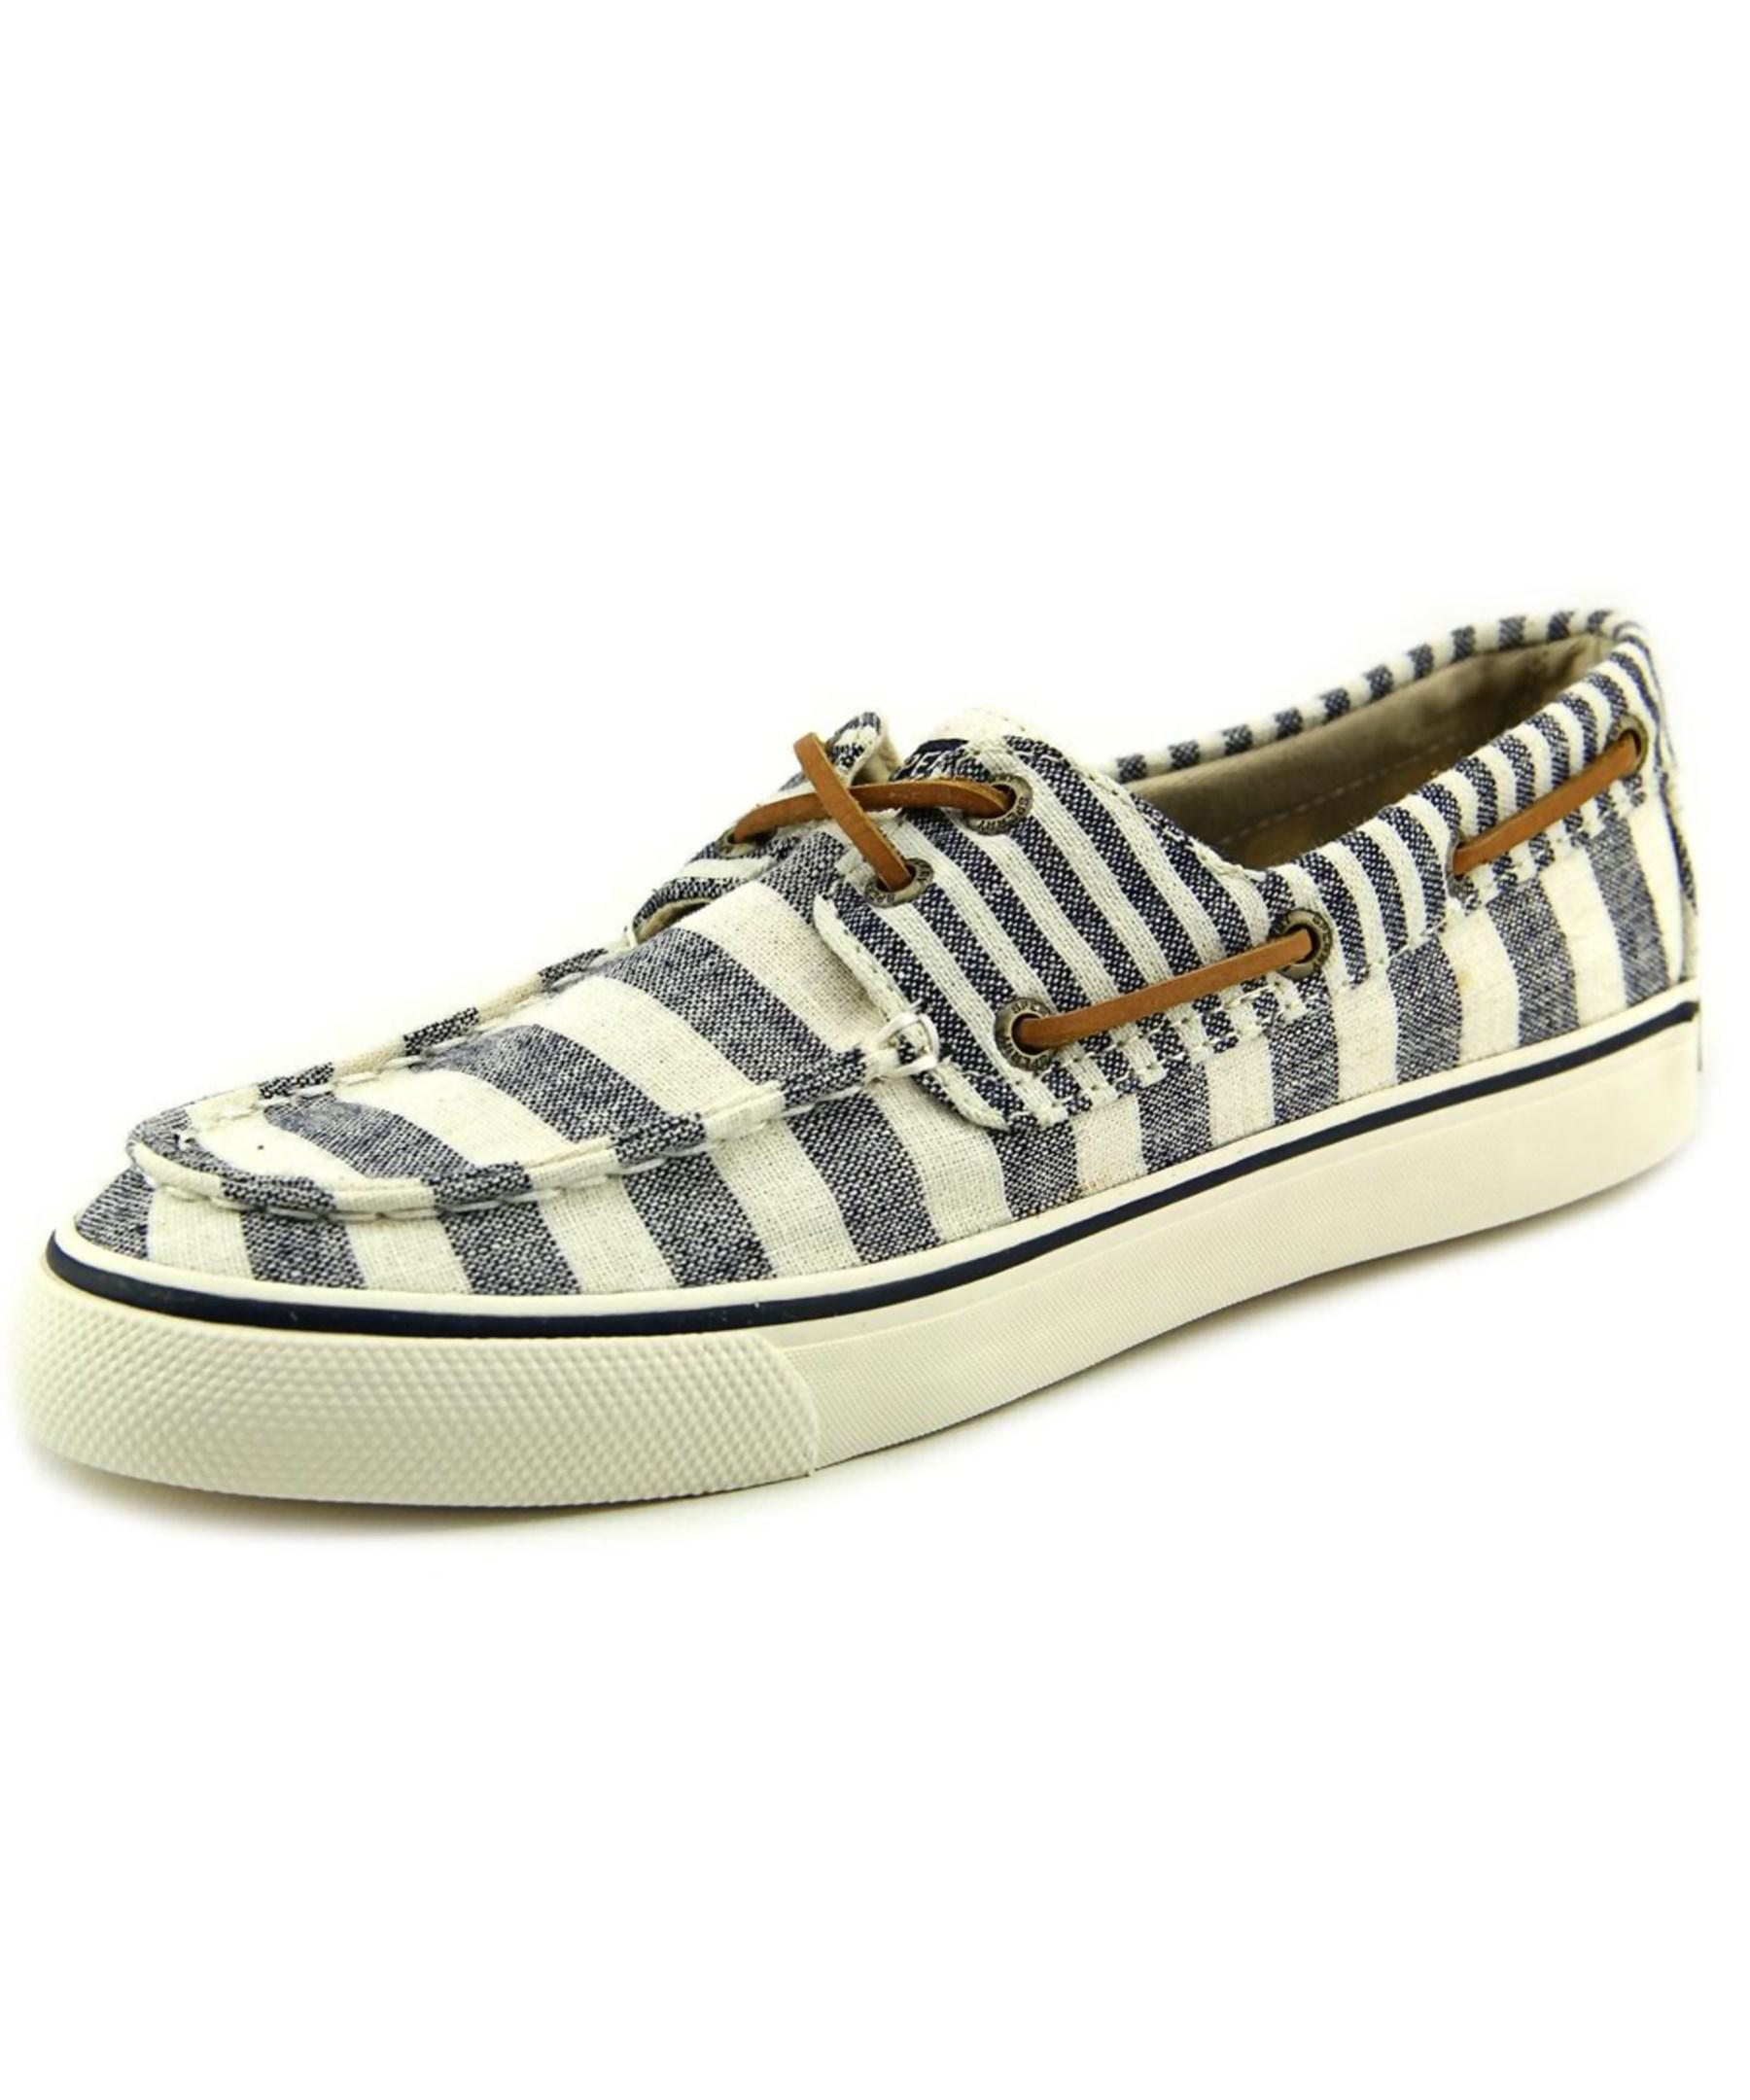 how to clean canvas sperry boat shoes